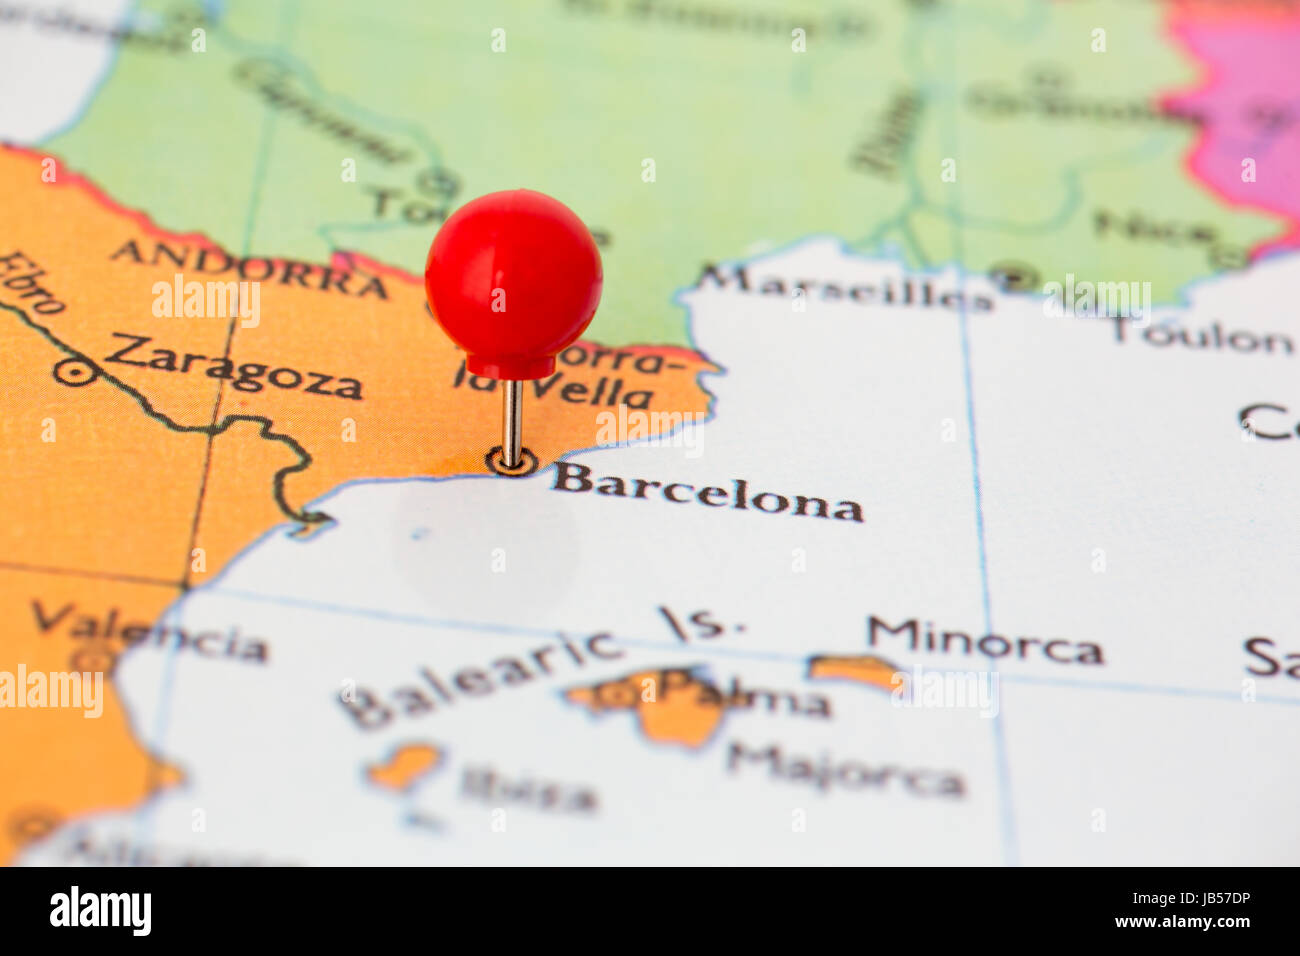 Round Red Thumb Tack Pinched Through City Of Barcelona On Spain Map Stock Photo Alamy